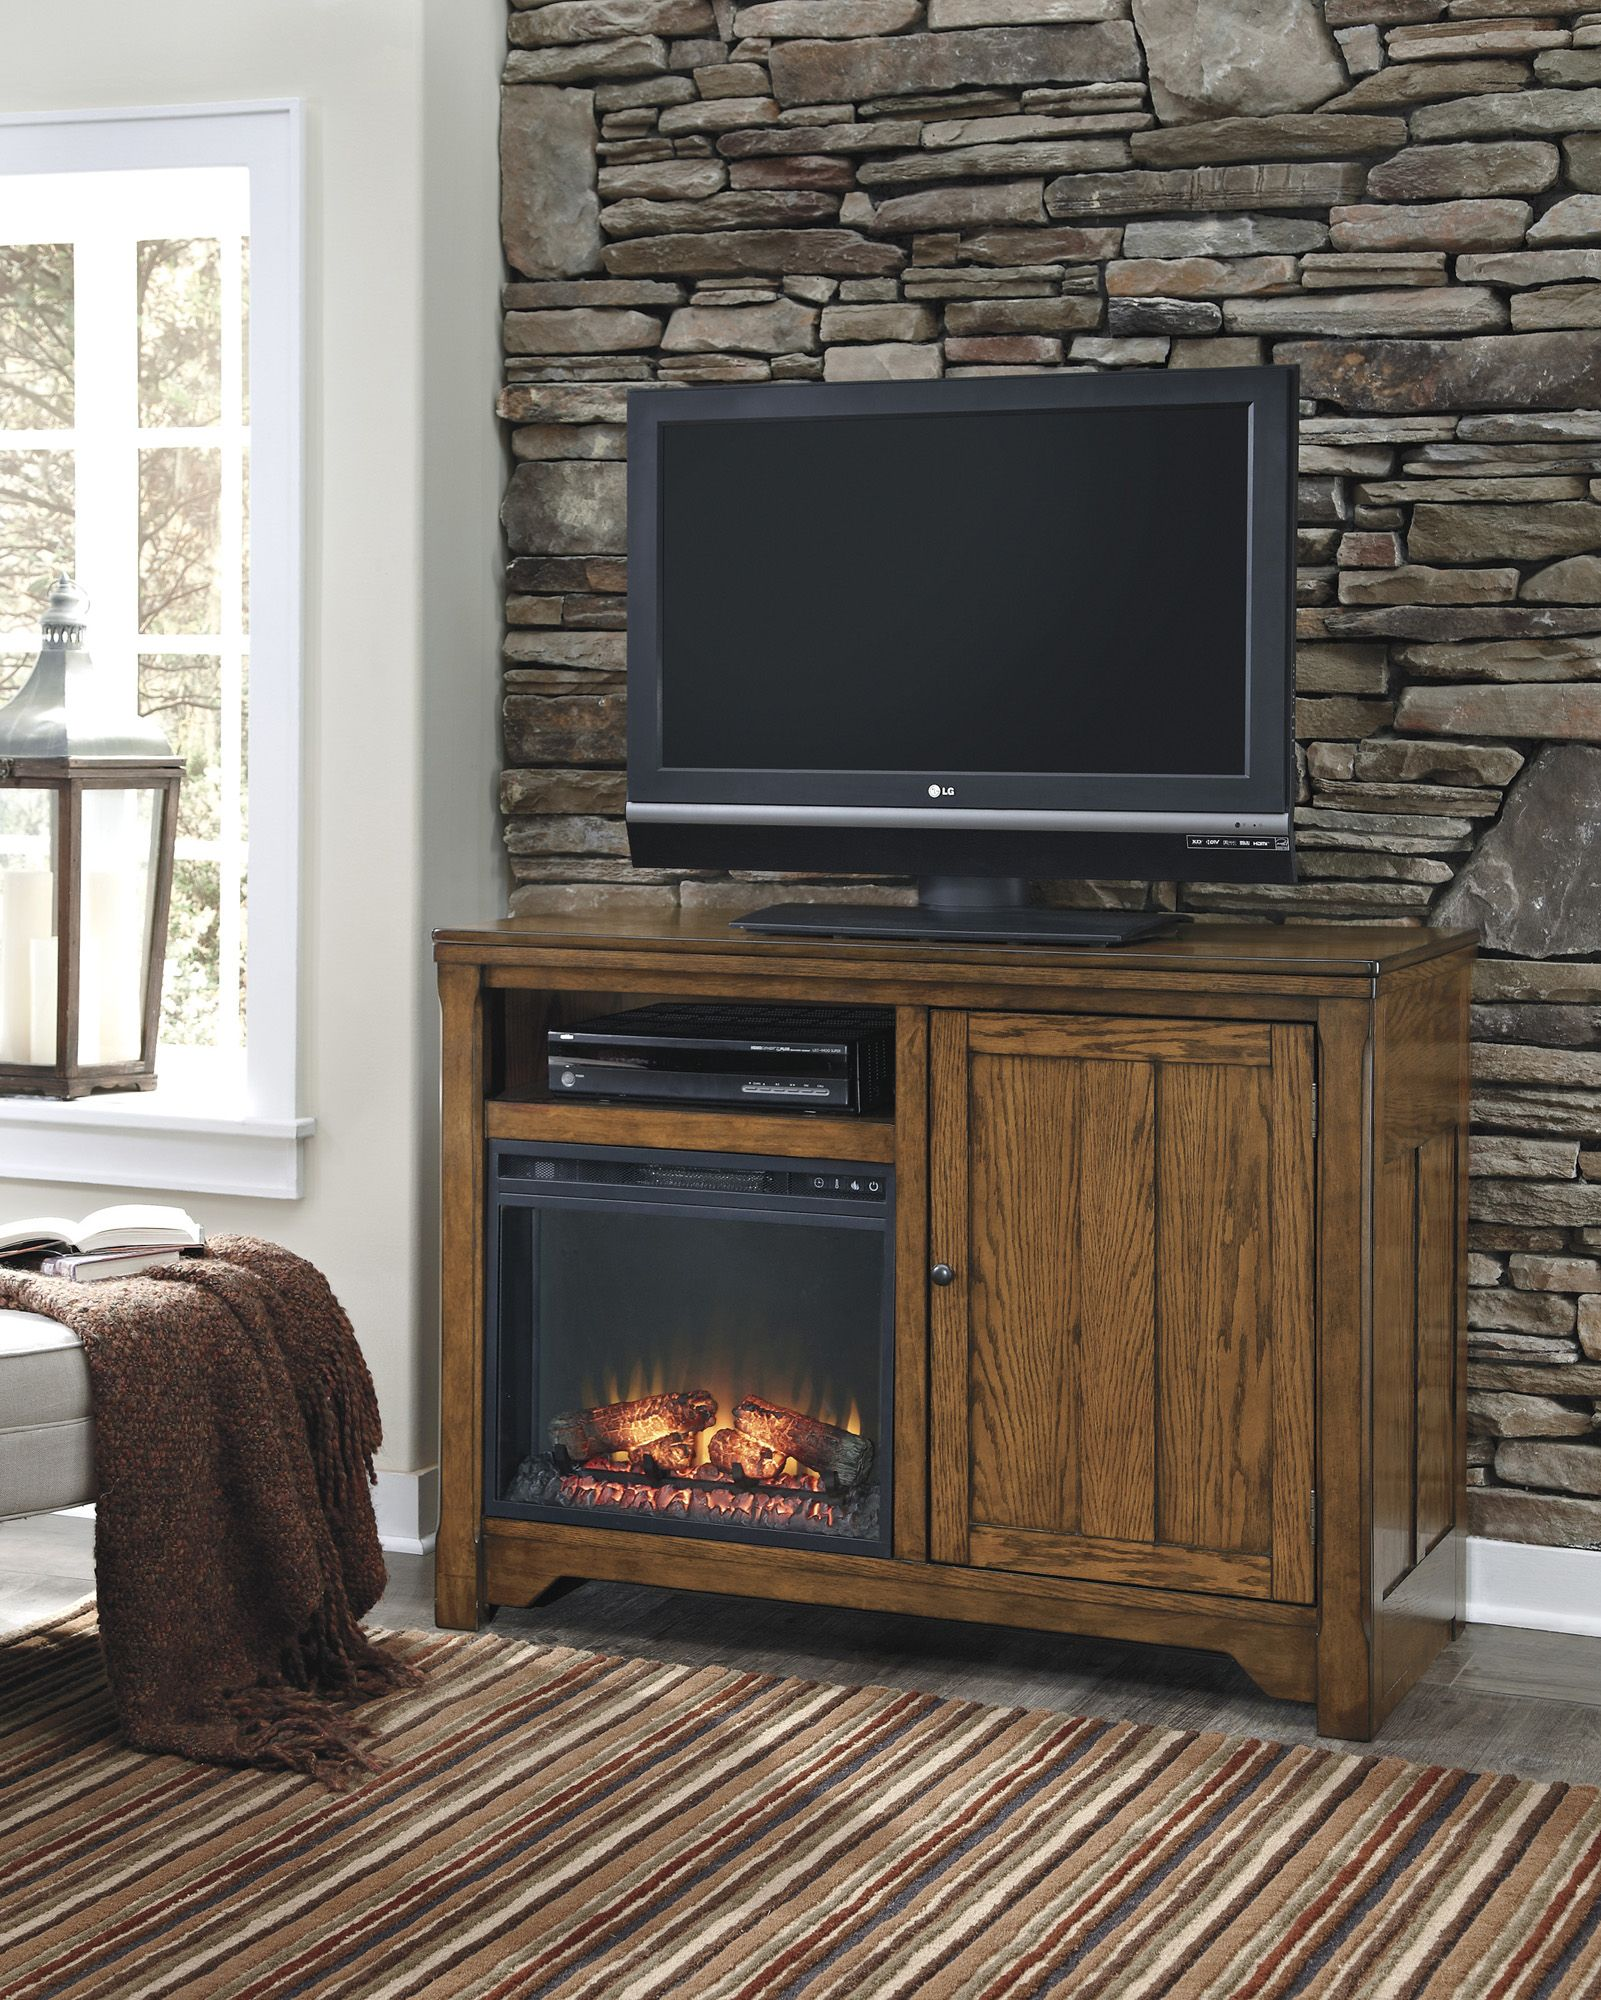 Ashley Fireplace Tv Stand Lovely ashley Furniture Chimerin Tv Stand with Fireplace and Cooler Option